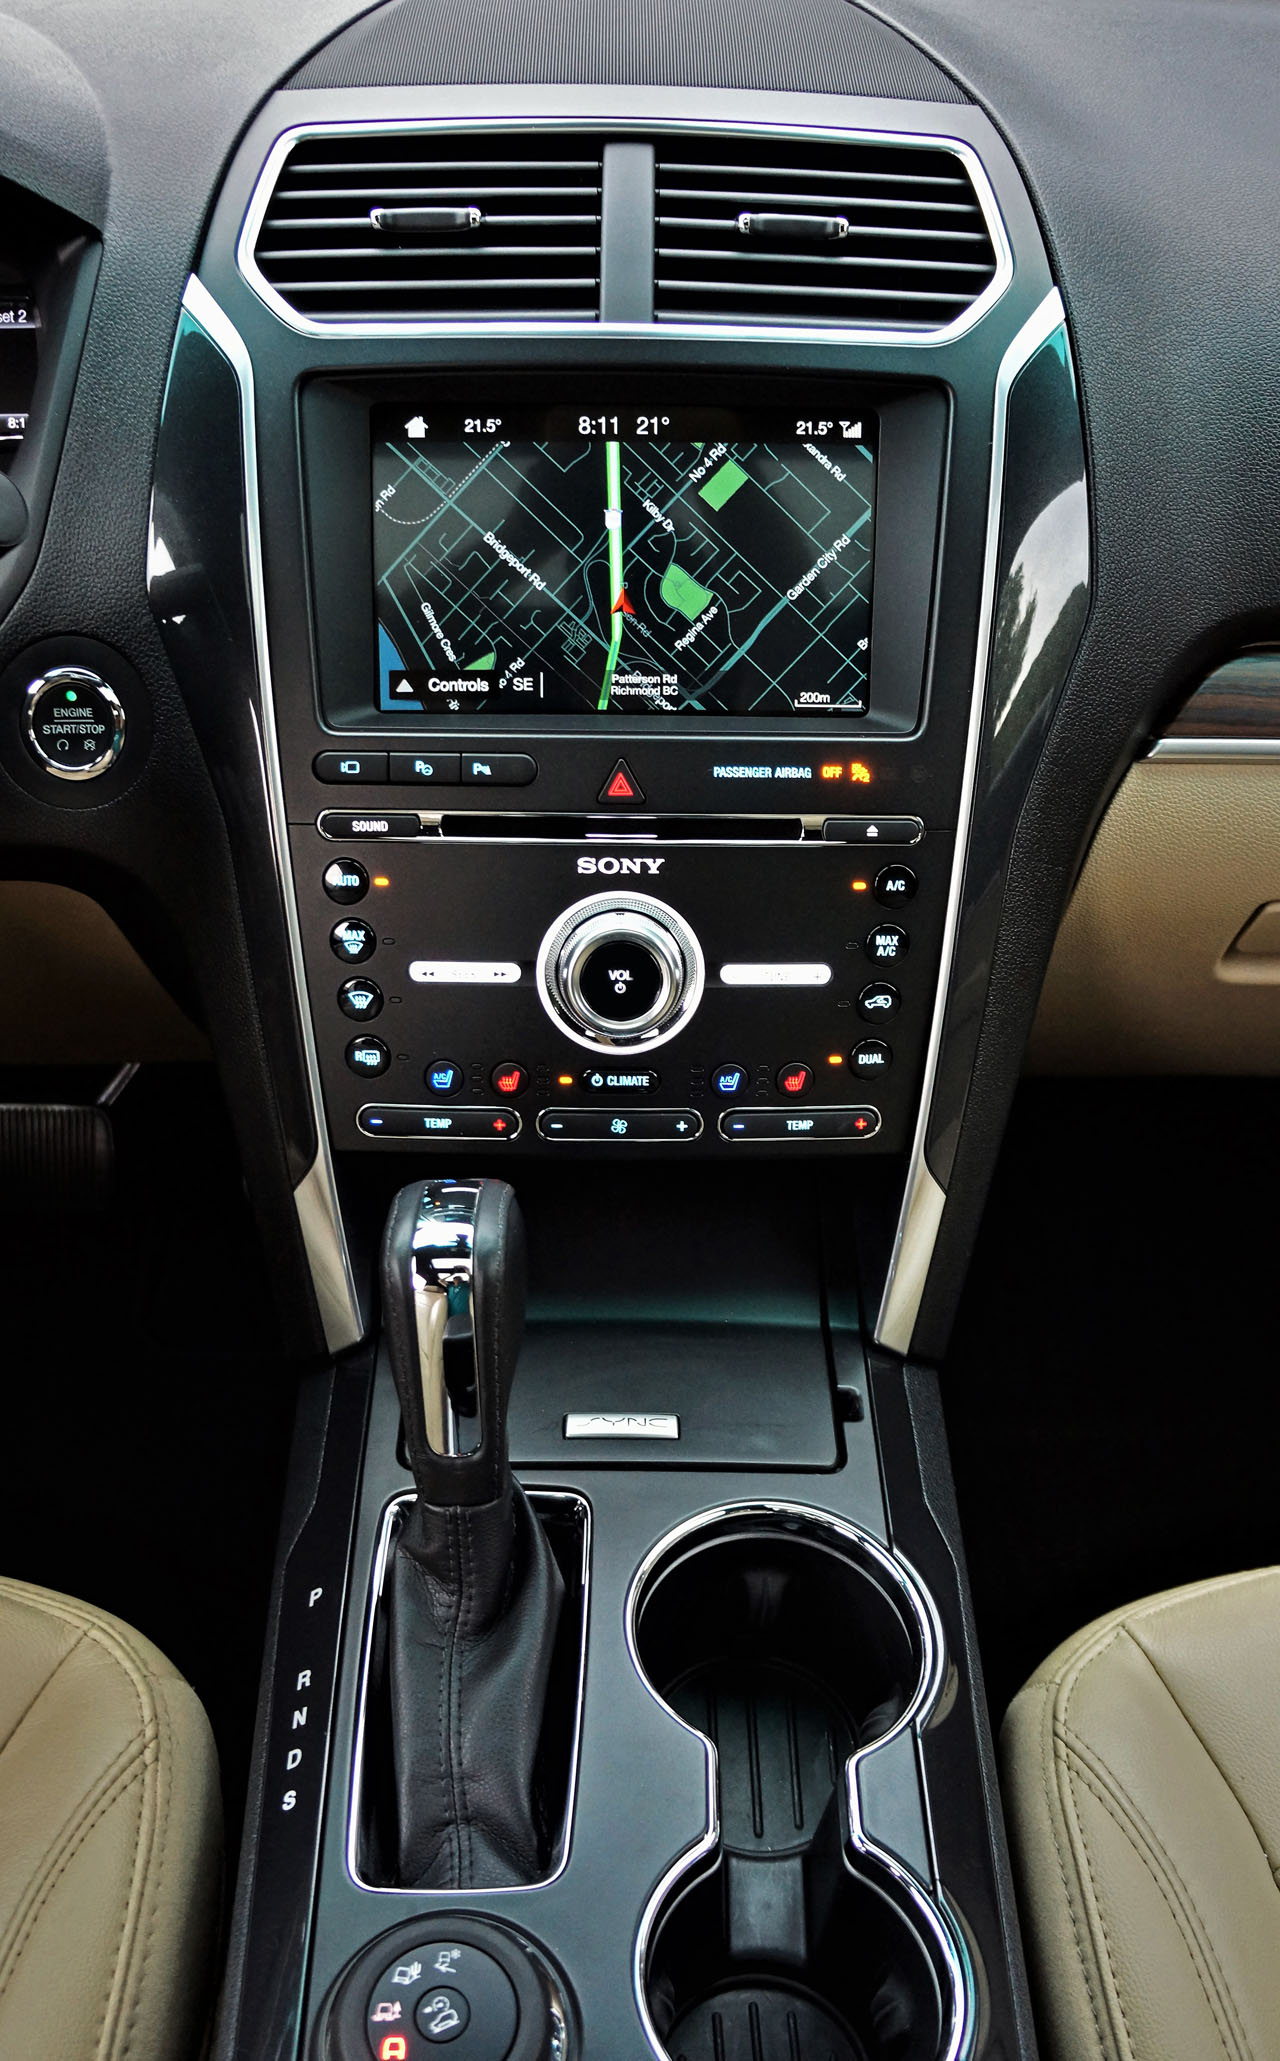 2017 Ford Explorer Limited 4wd Road Test Carcostcanada 2006 Xlt 12 Volt Power Outlet Is Outcontrolshood Gave Its 2016 A Mid Cycle Update And Continued Into More Or Less Unchanged Rounded Edges Sharper